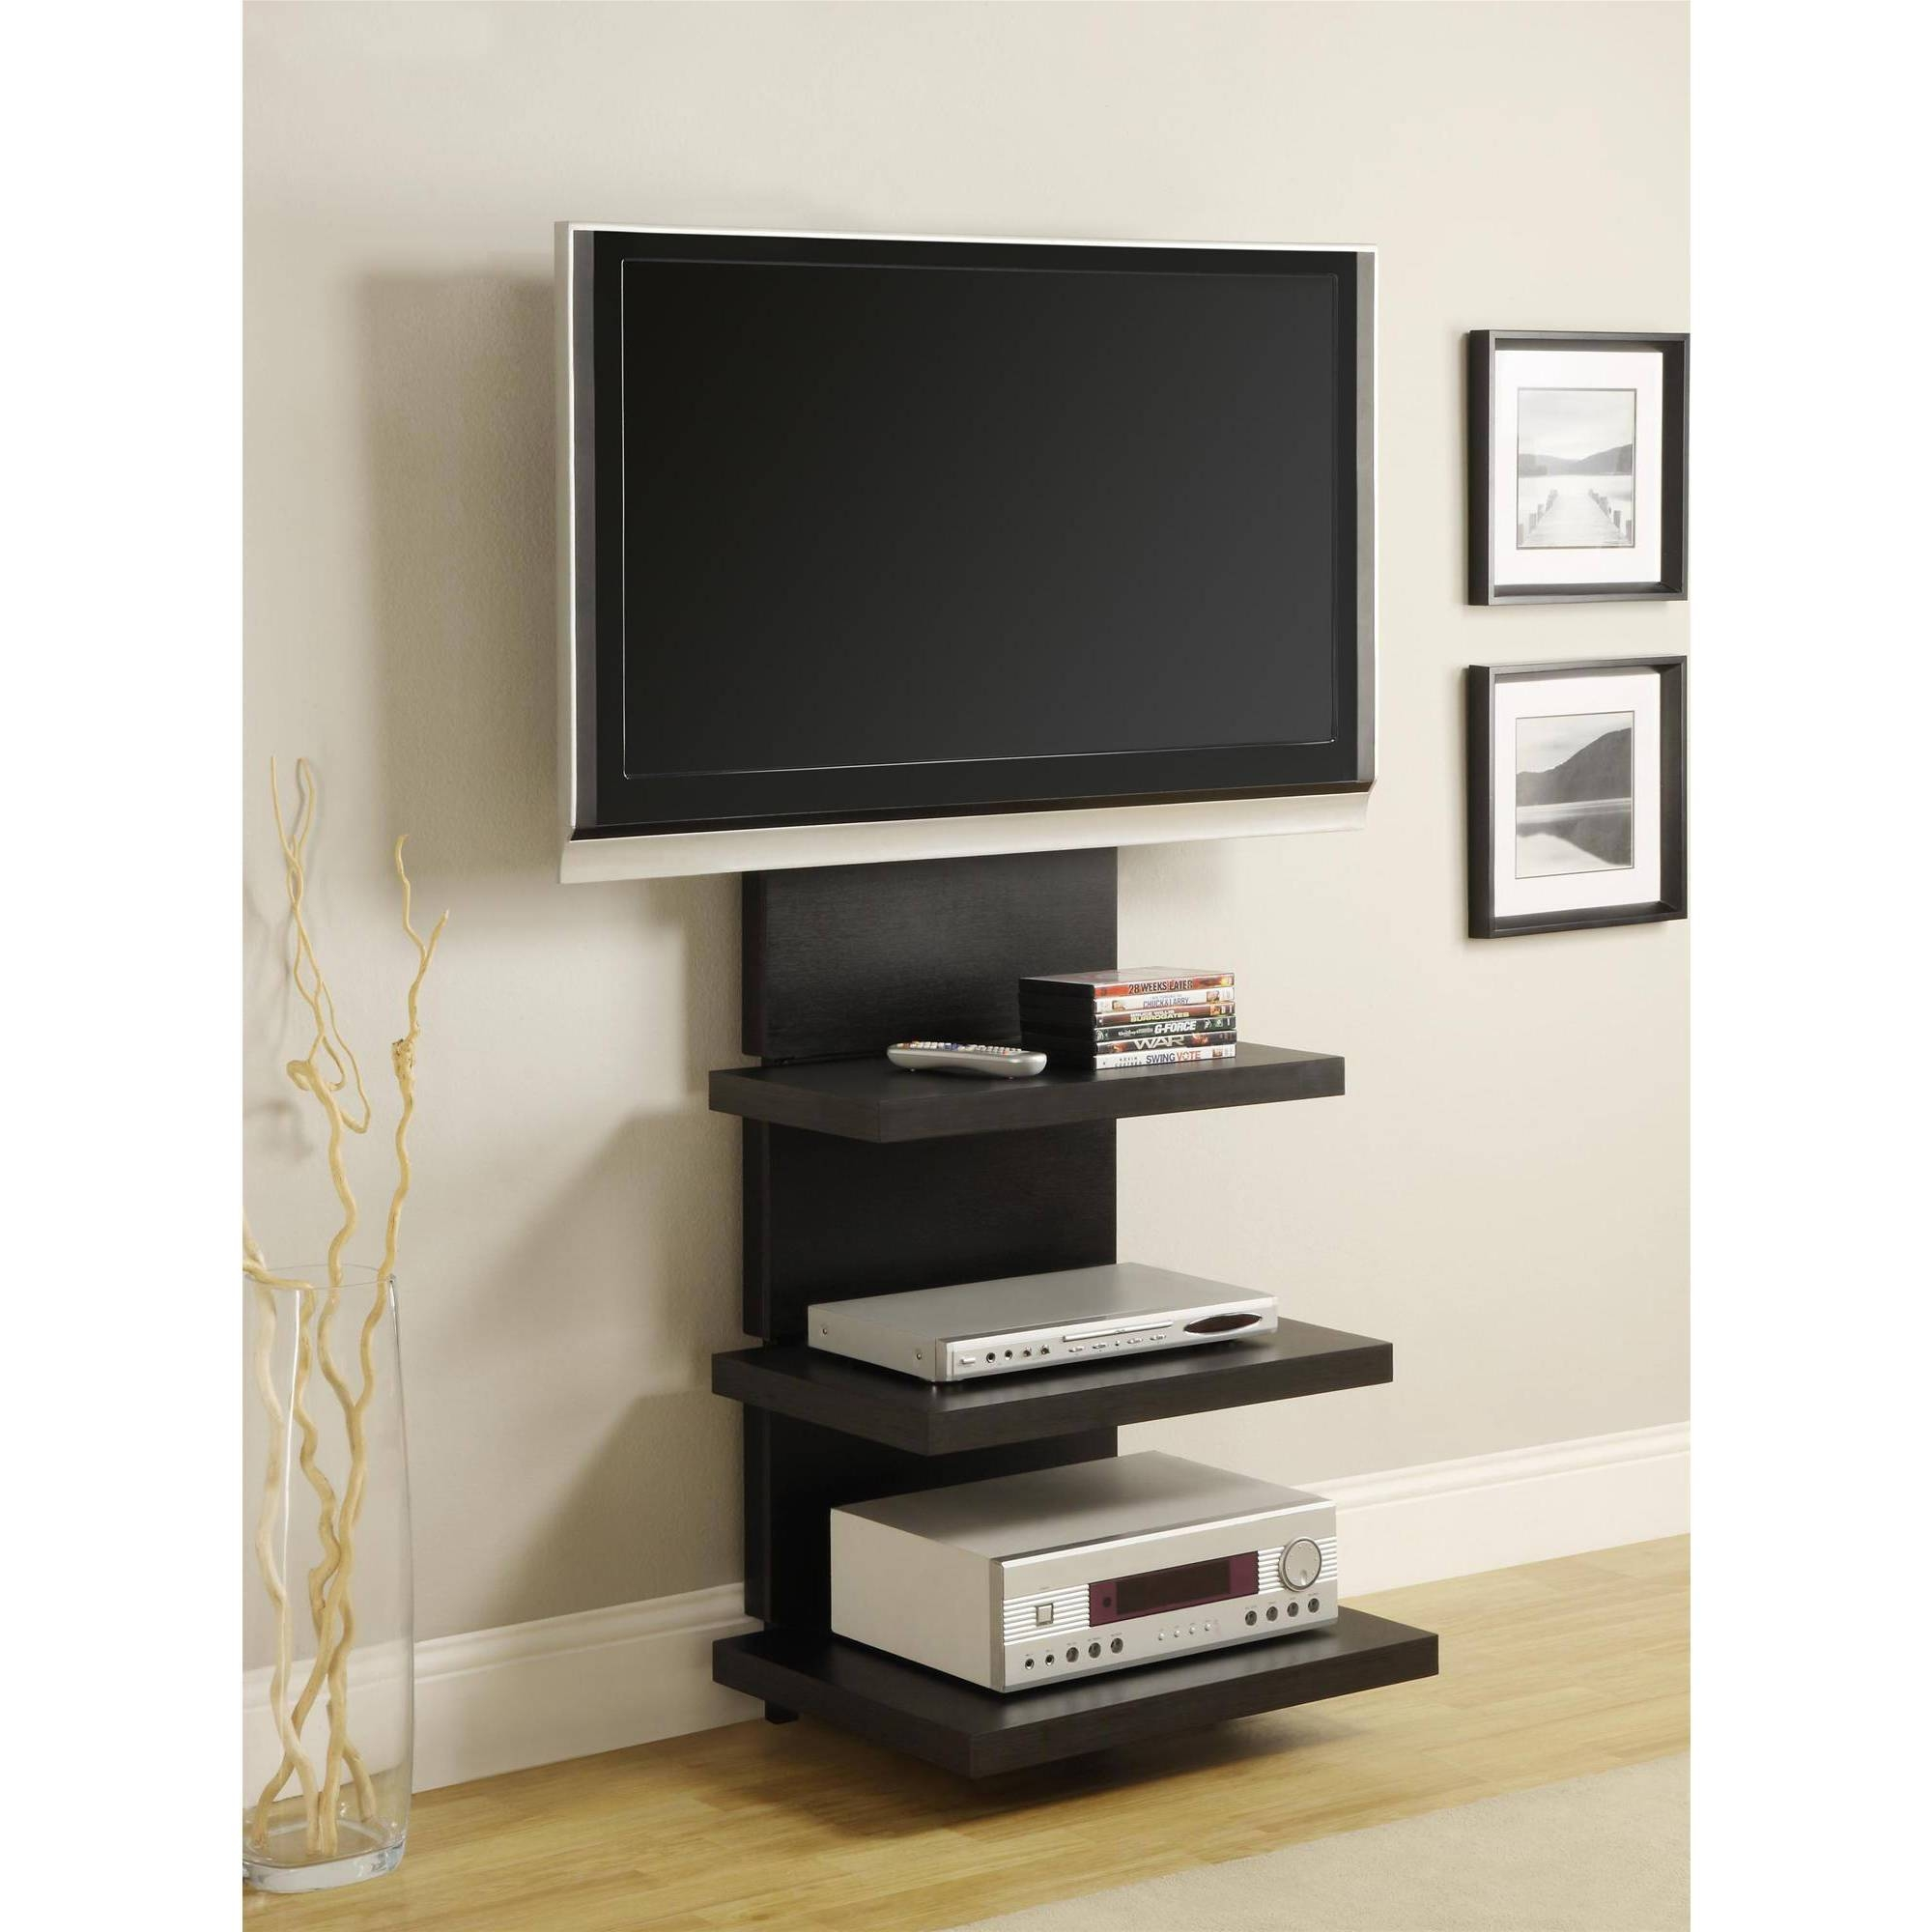 55 Tv Stand With Mount Pertaining To Tv Stands Swivel Mount (View 6 of 15)